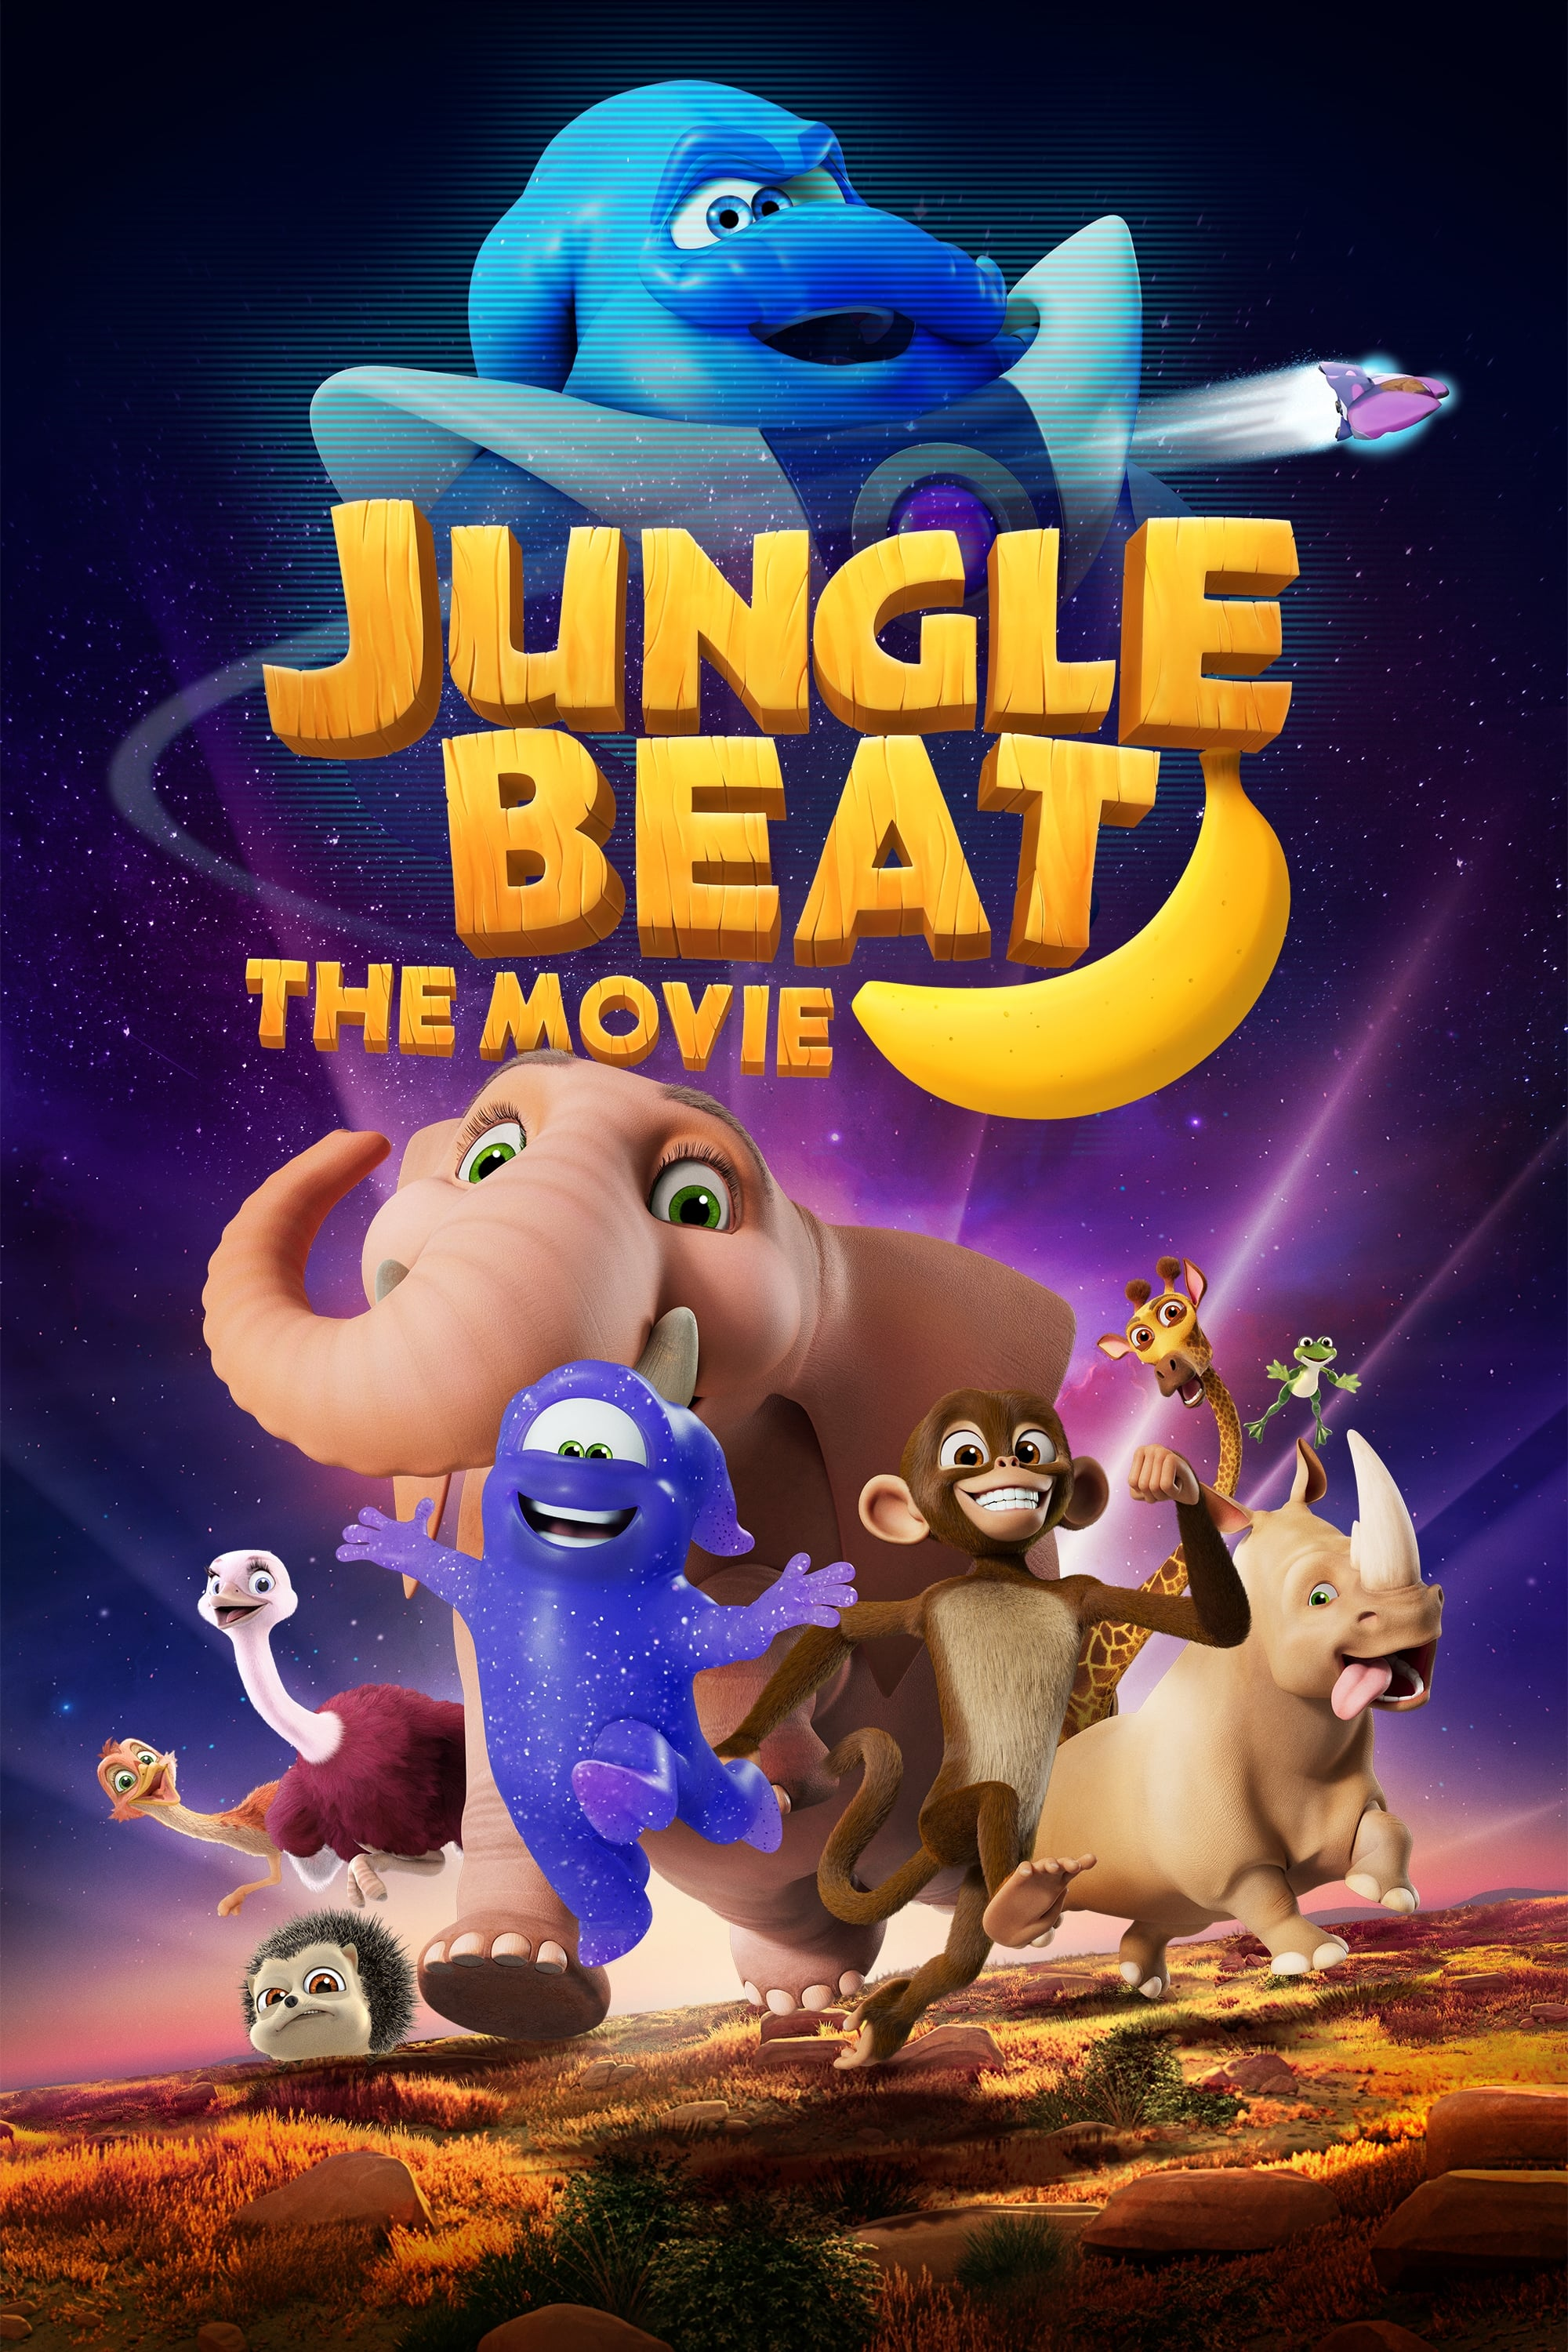 Jungle-Beat-The-Movie-2020-3423